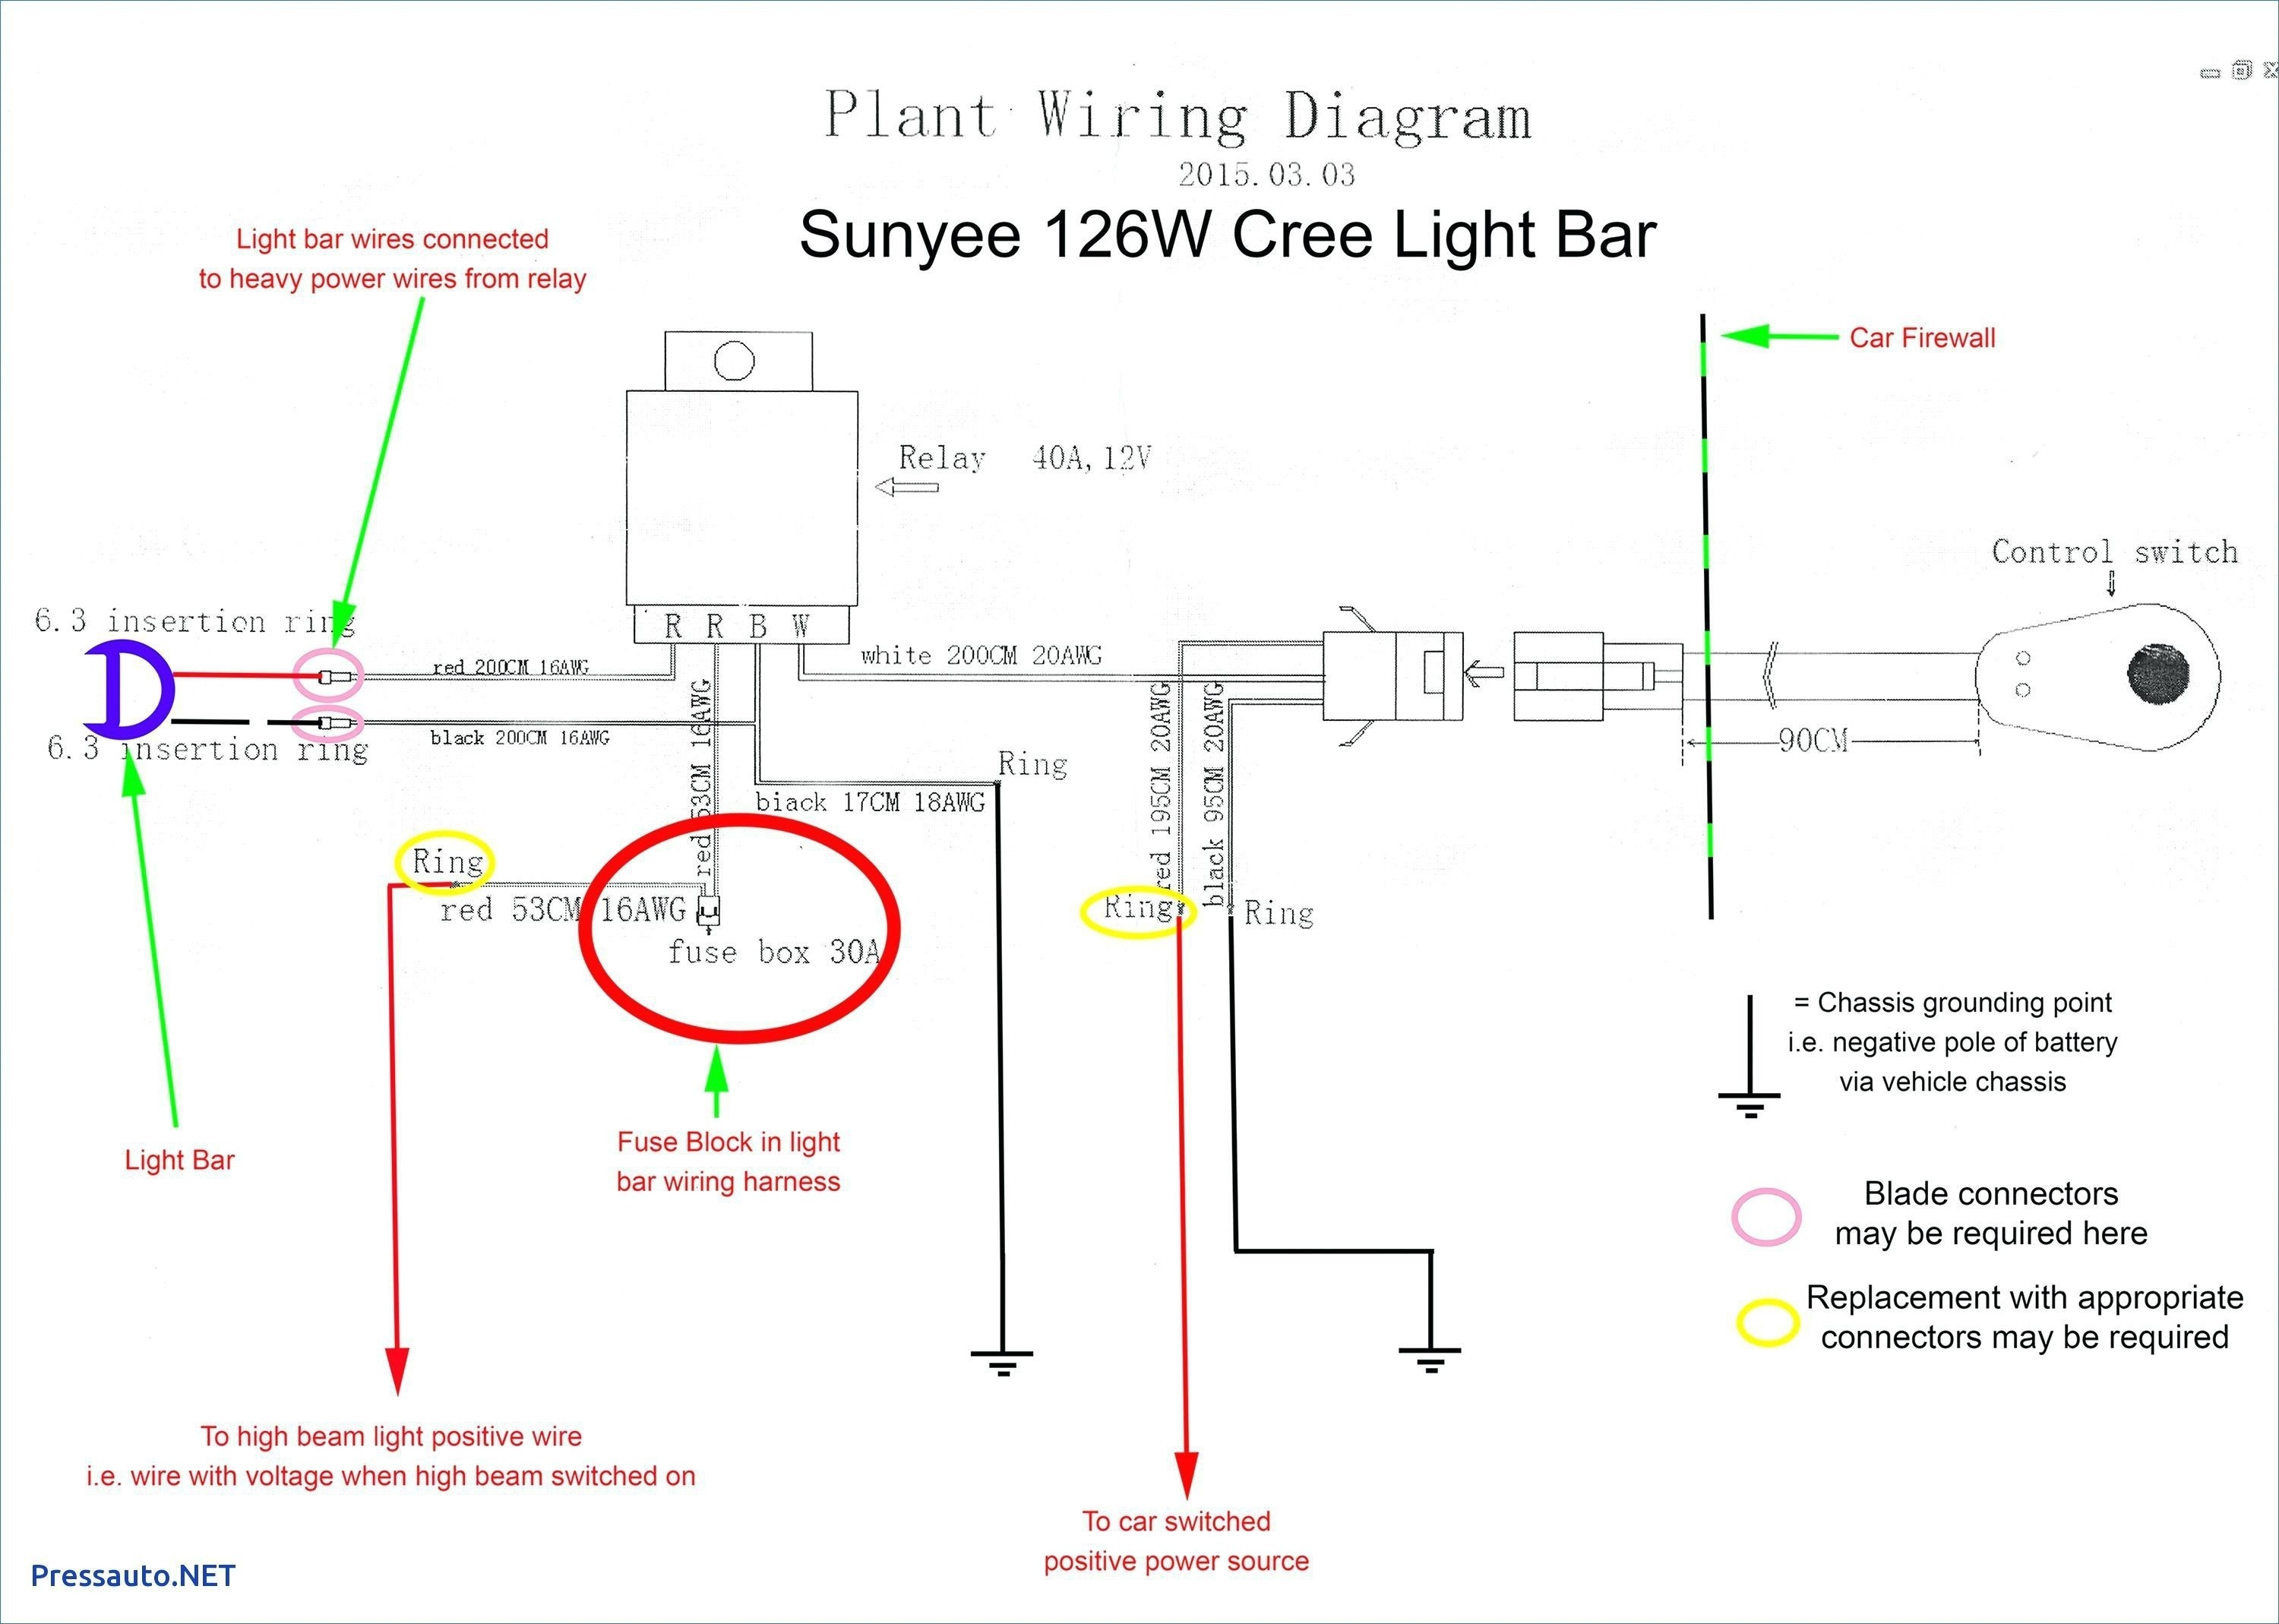 recon tailgate light bar wiring diagram | free wiring diagram led tailgate light bar wiring diagram tailgate light bar wiring diagram